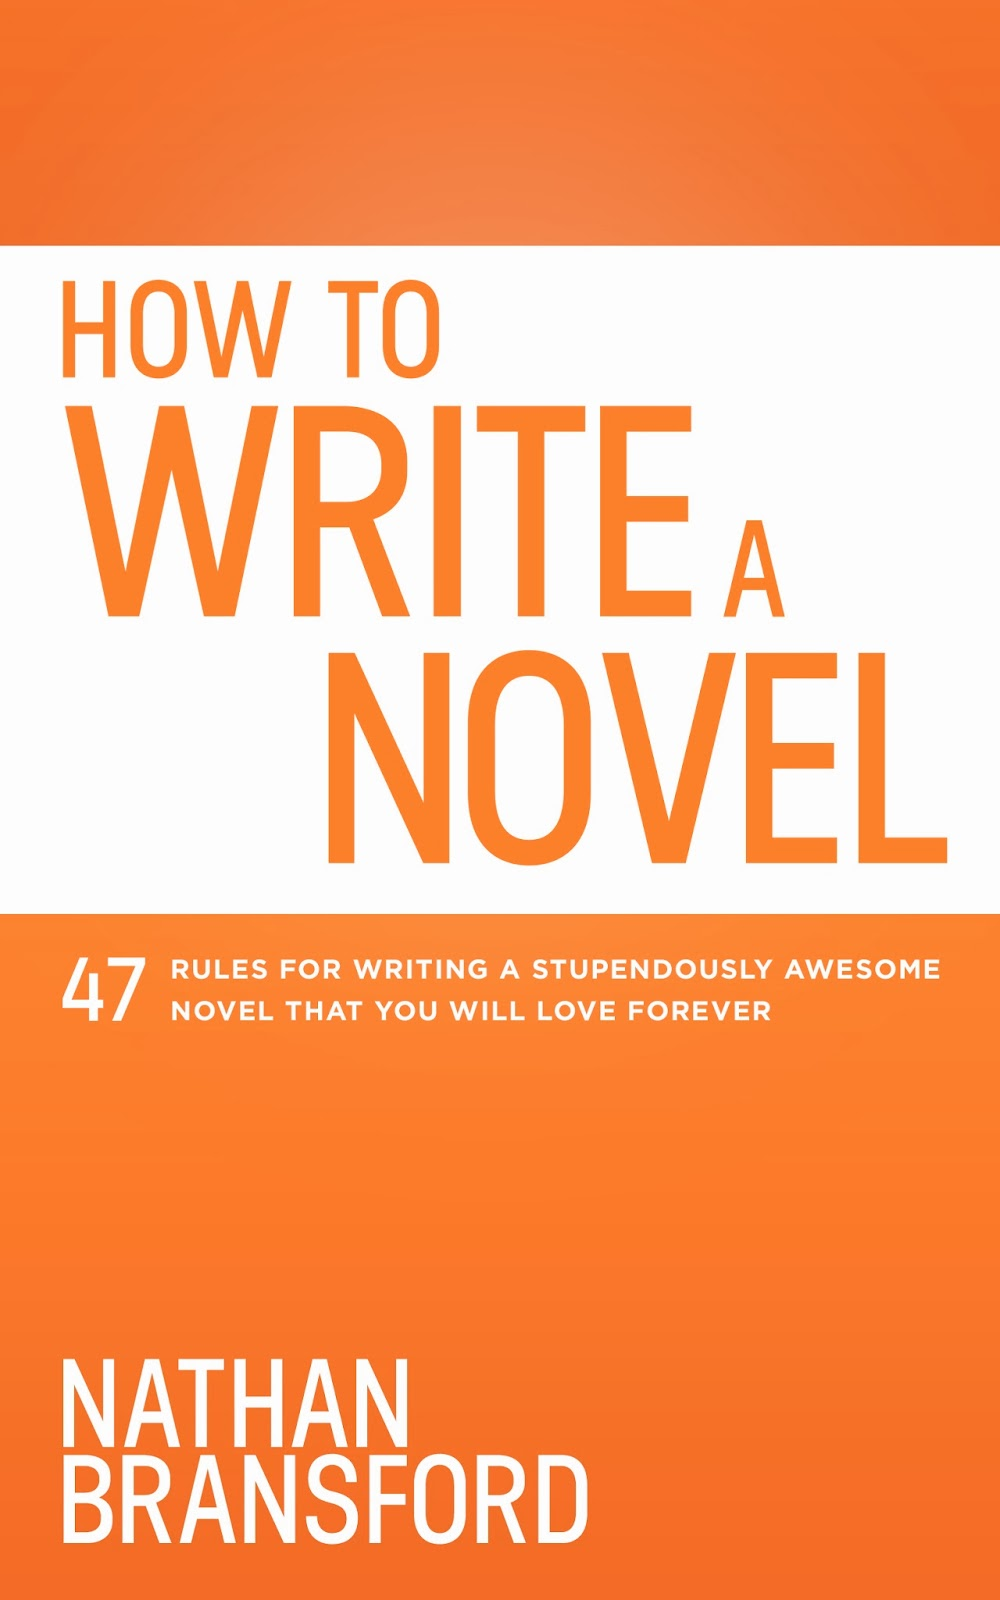 How to Write a Novel with Writers Digest Award Winning Blog Writer Nathan Bransford